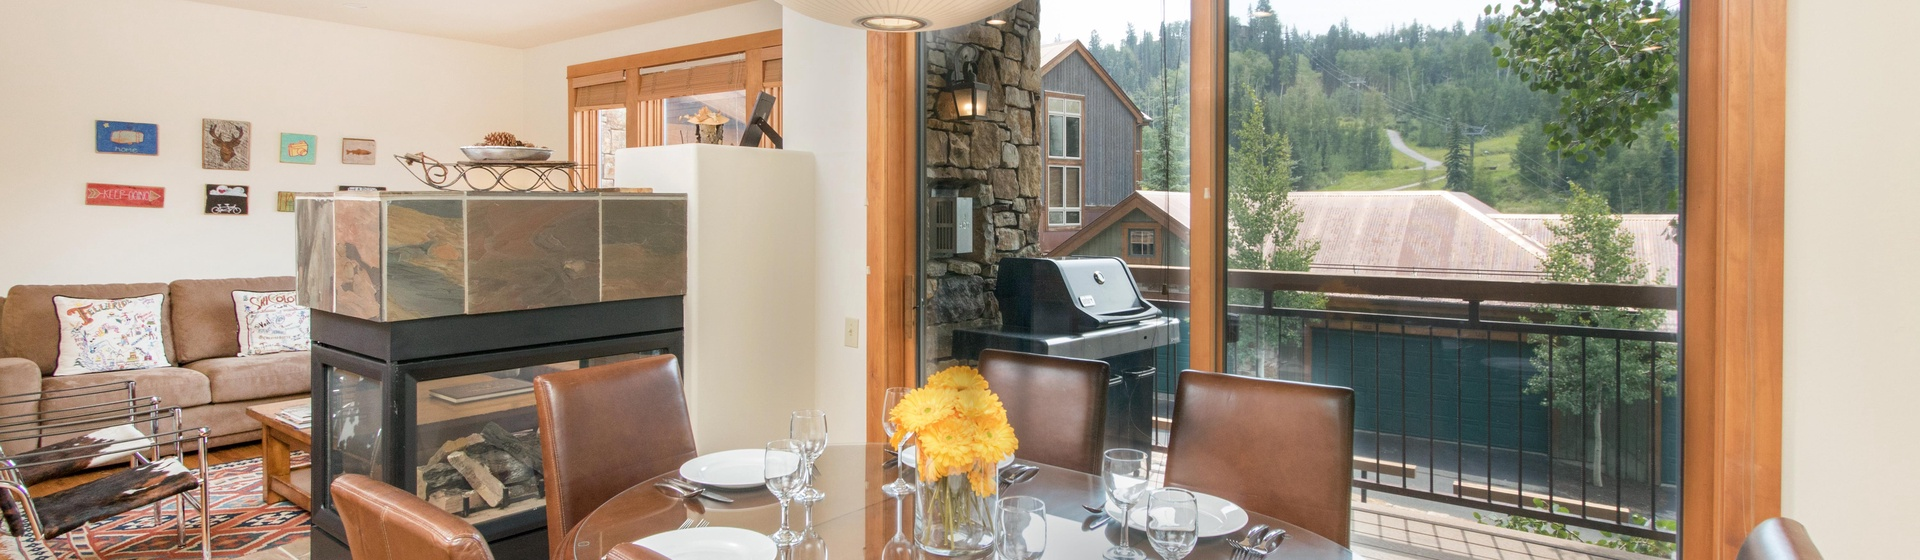 3-Telluride-Terraces-101-Dining-Area.JPG